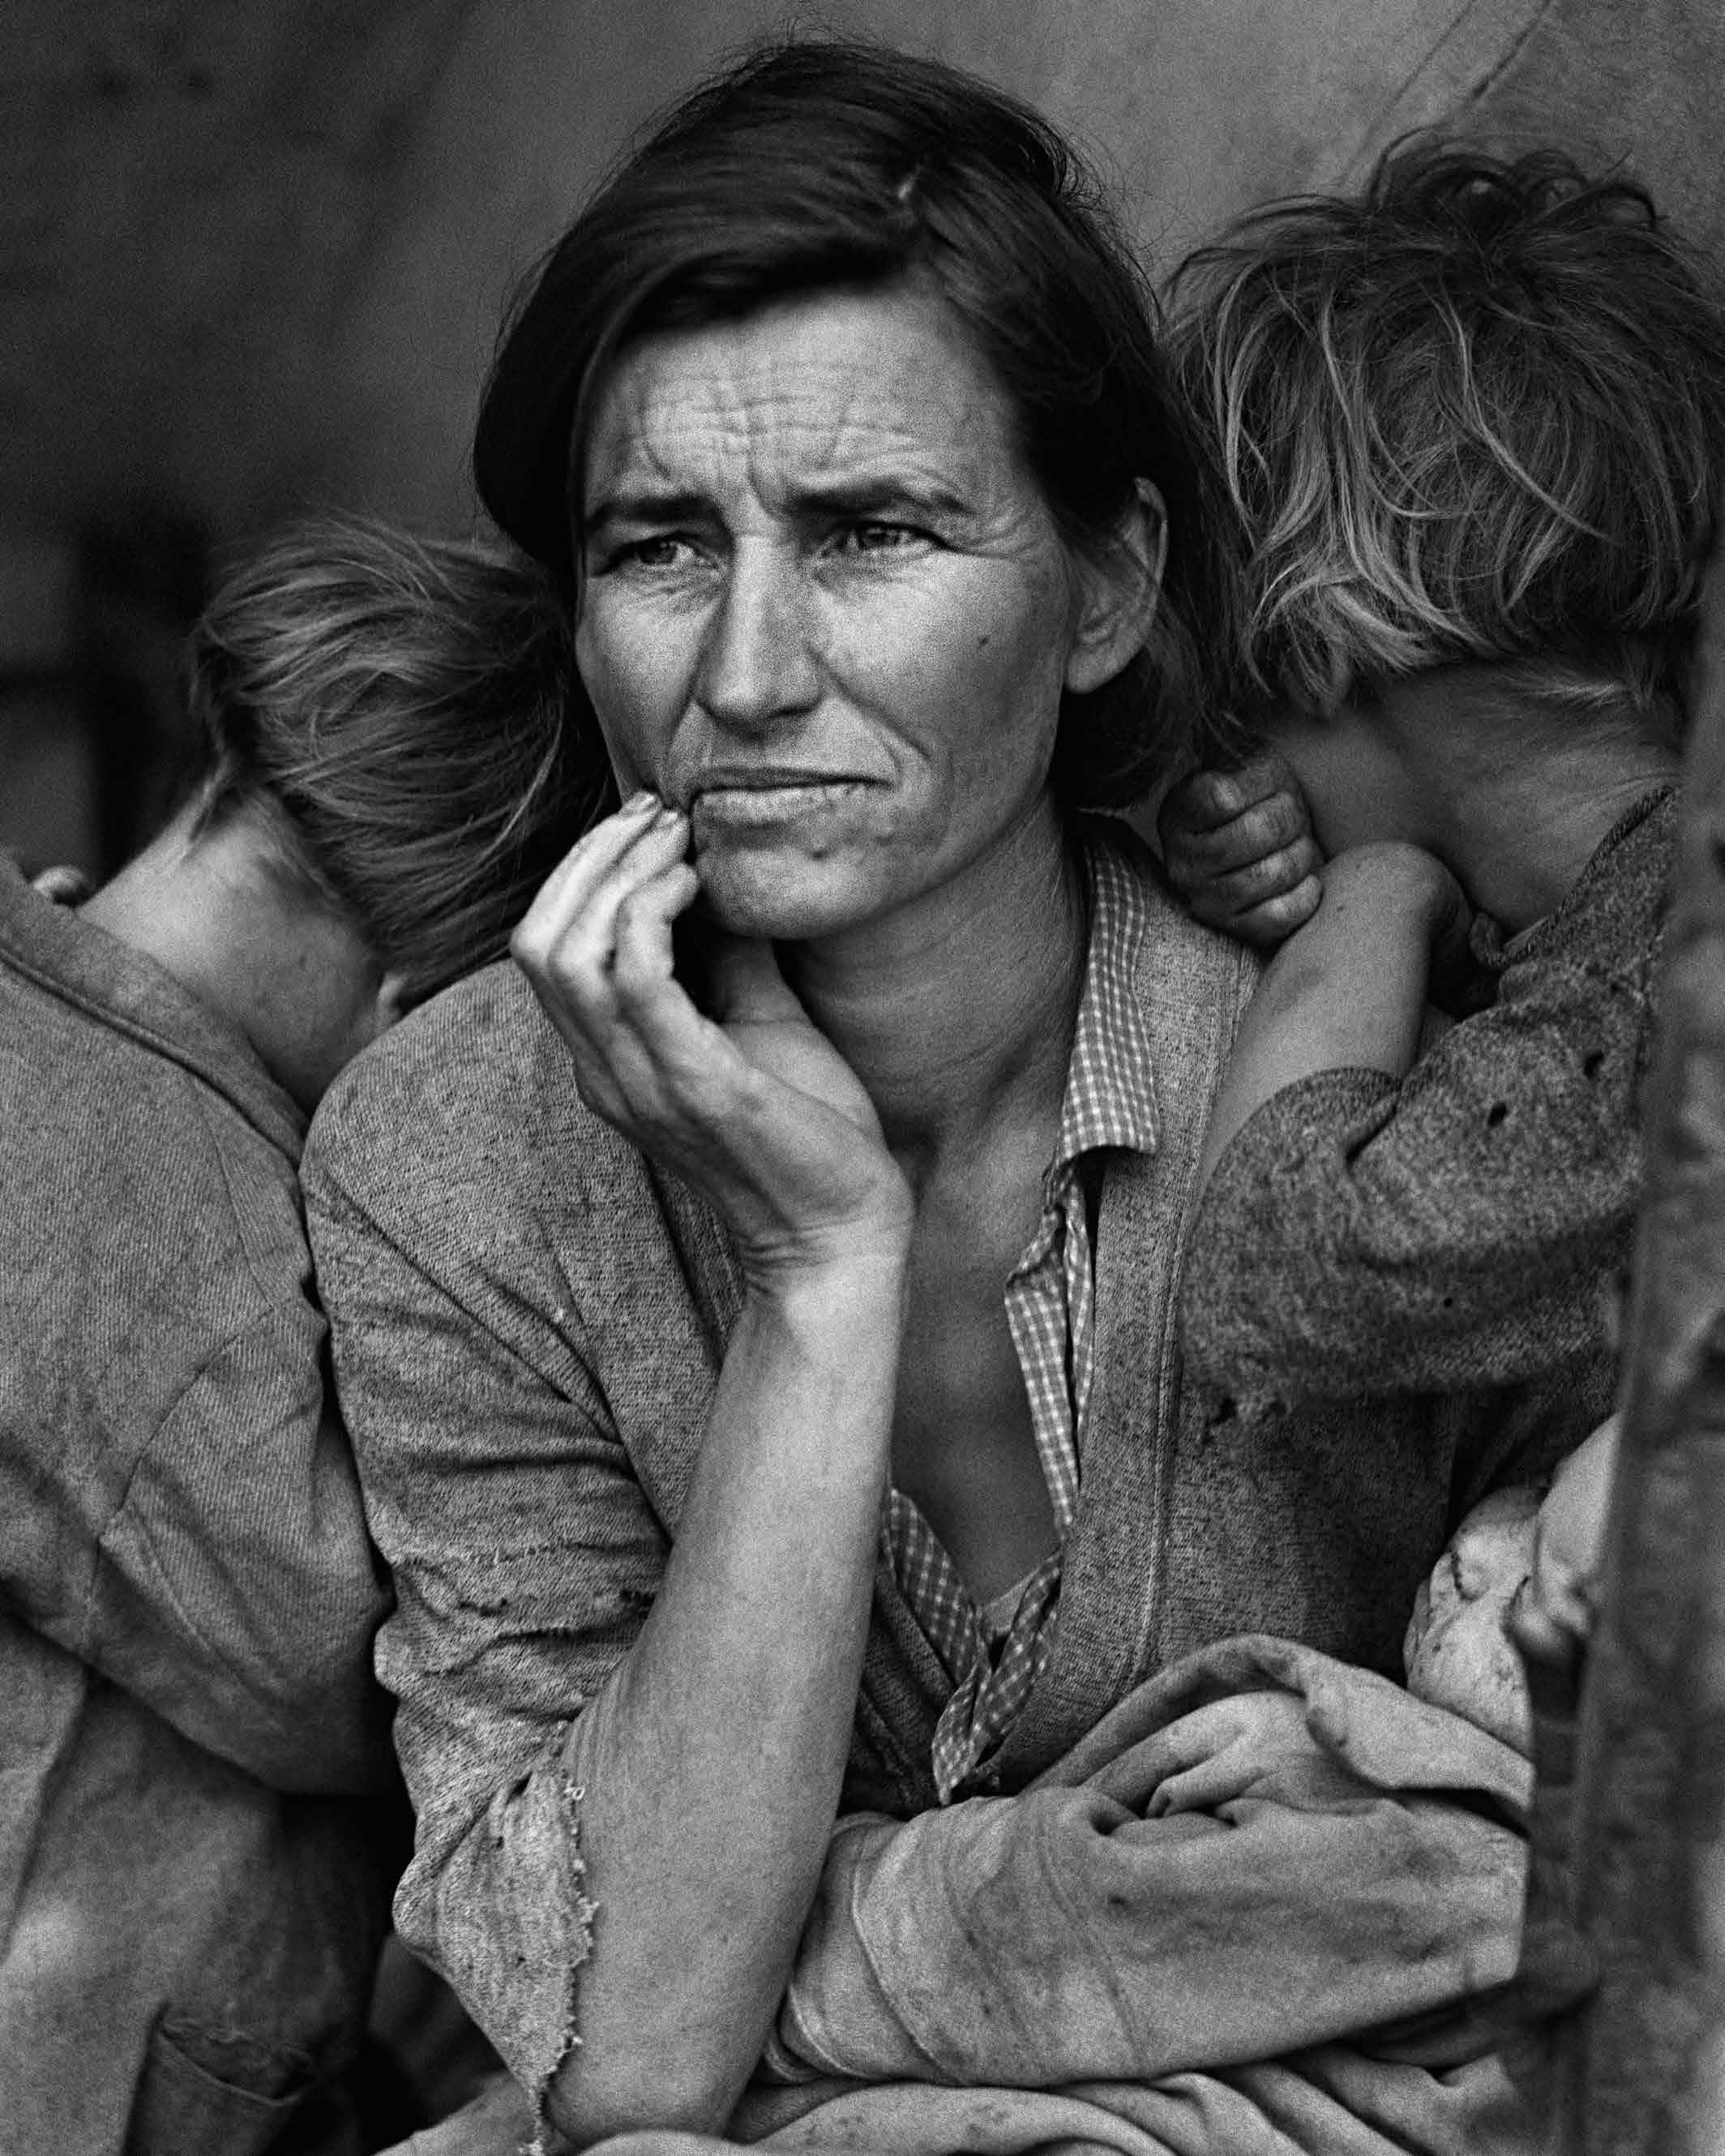 © Dorothea Lange/Farm Security Administration